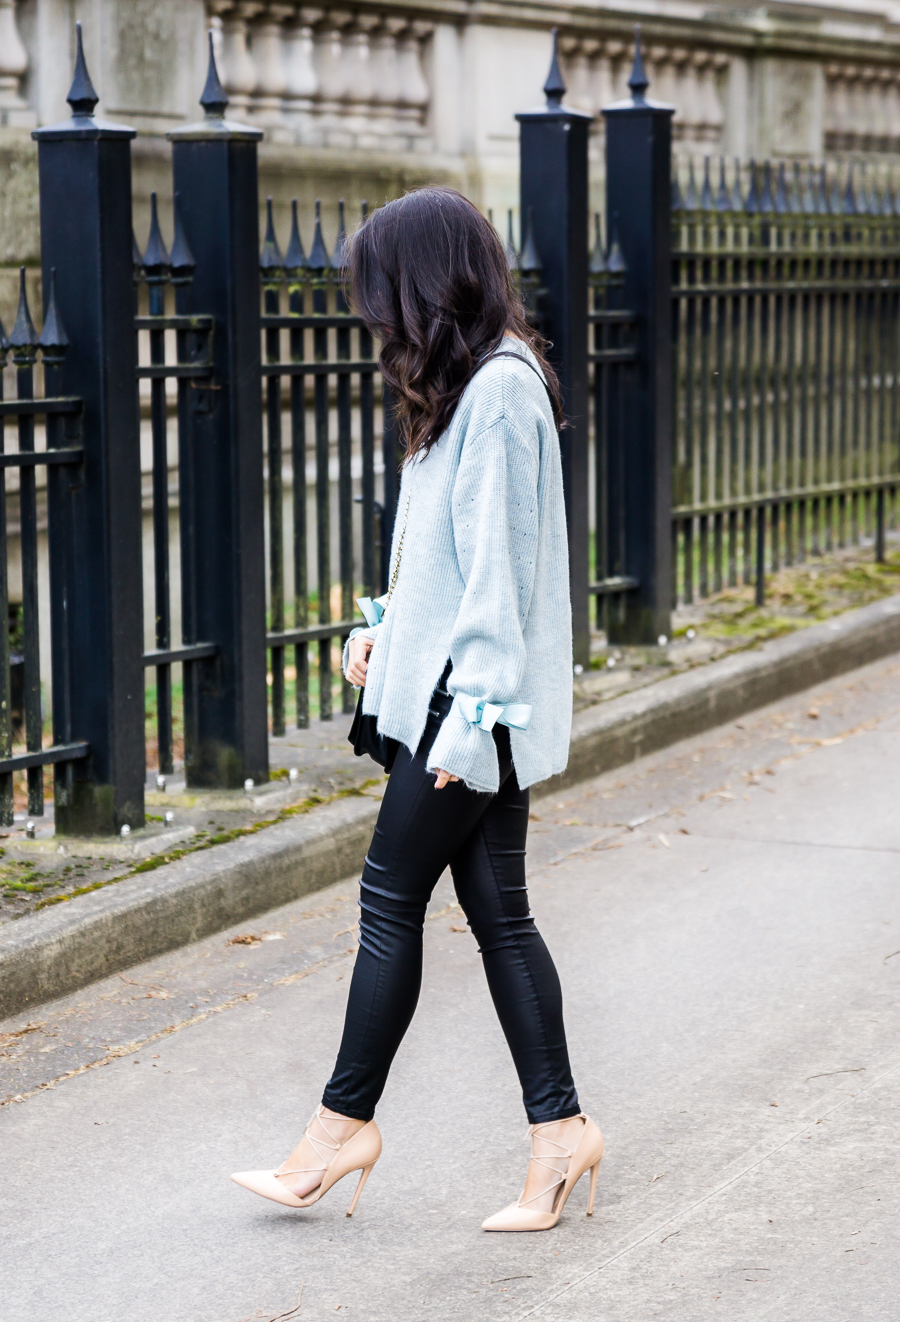 Topshop sweater with bows ribbon tie cuff, Asos coated skinny jeans, Rebecca Minkoff quilted crossbody, lace up heels, Valentines Day outfit idea